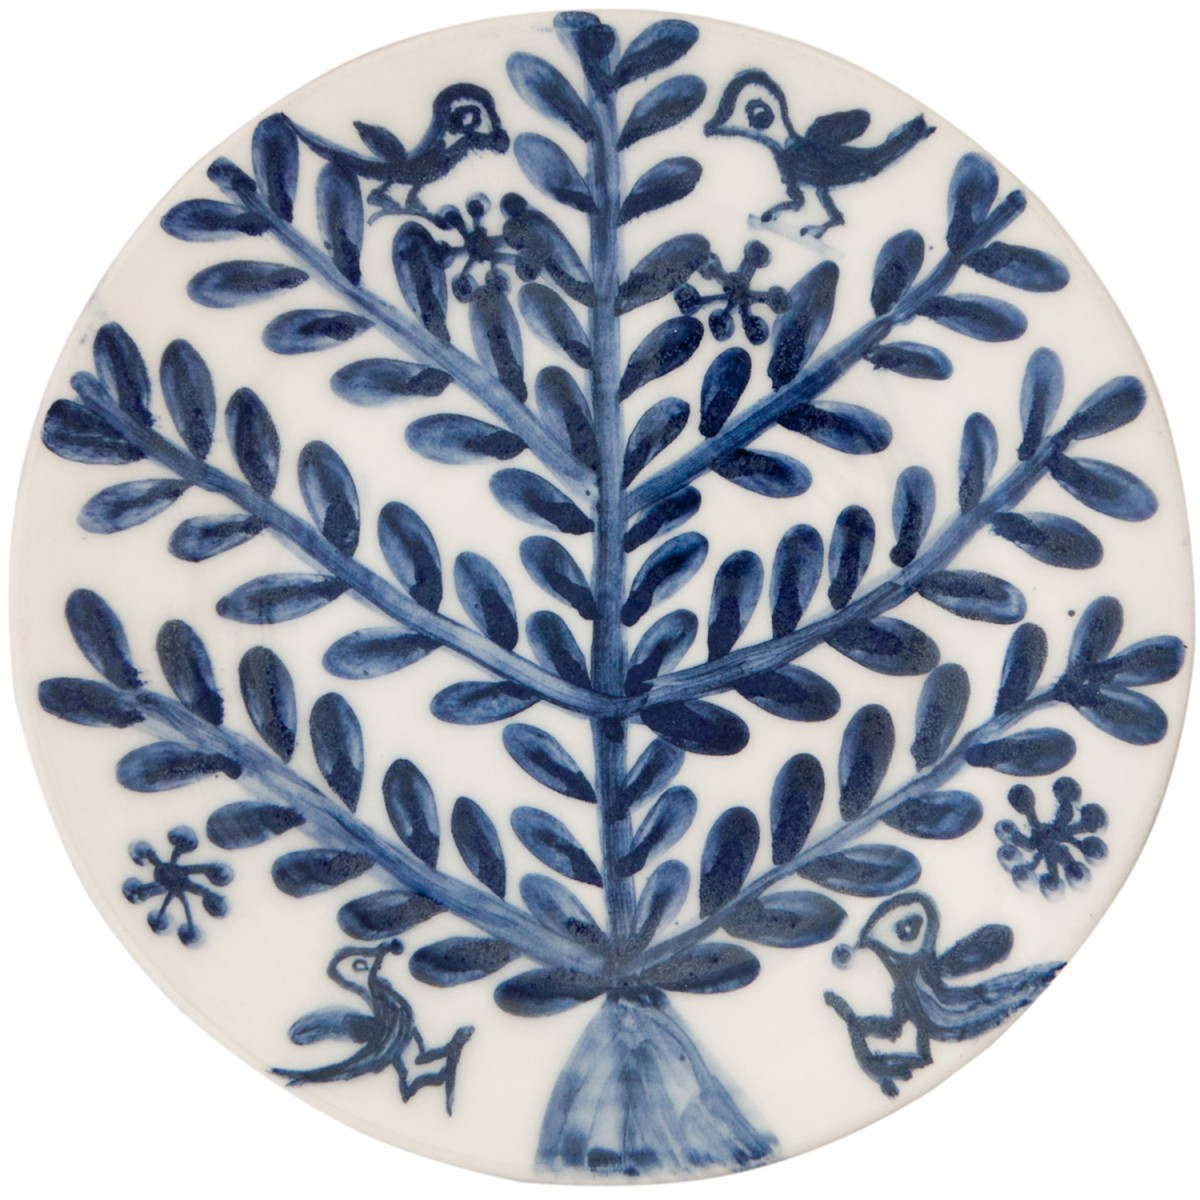 Decorative Blue and White Plates for sale - Tree & Birds-1